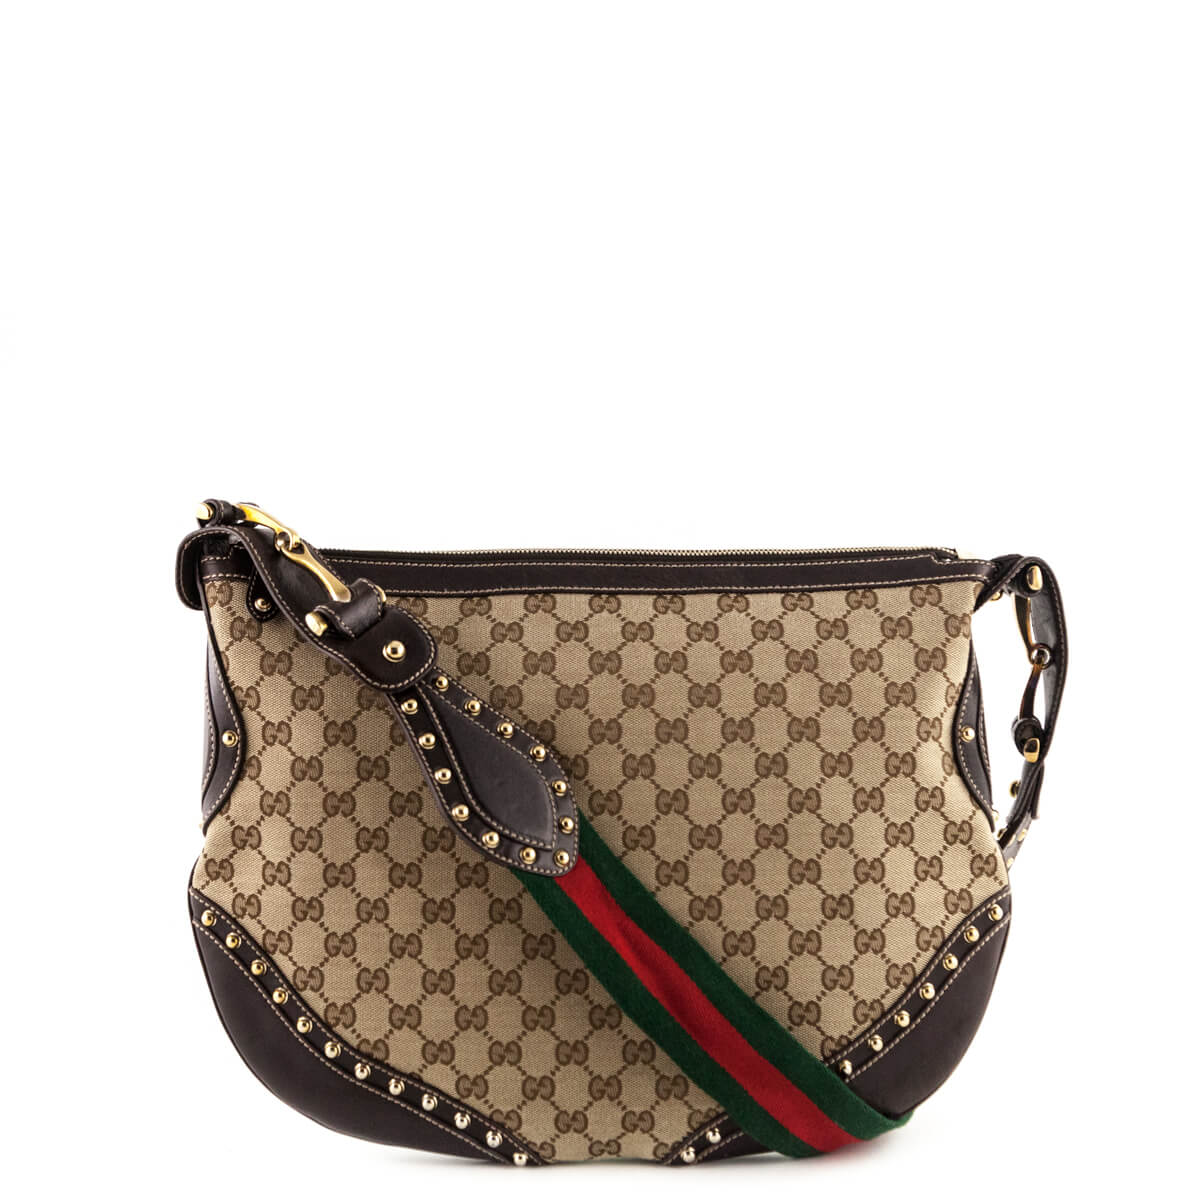 7c9f79abcd52 Gucci GG Canvas Pelham Studded Hobo Bag - LOVE that BAG - Preowned  Authentic Designer Handbags ...